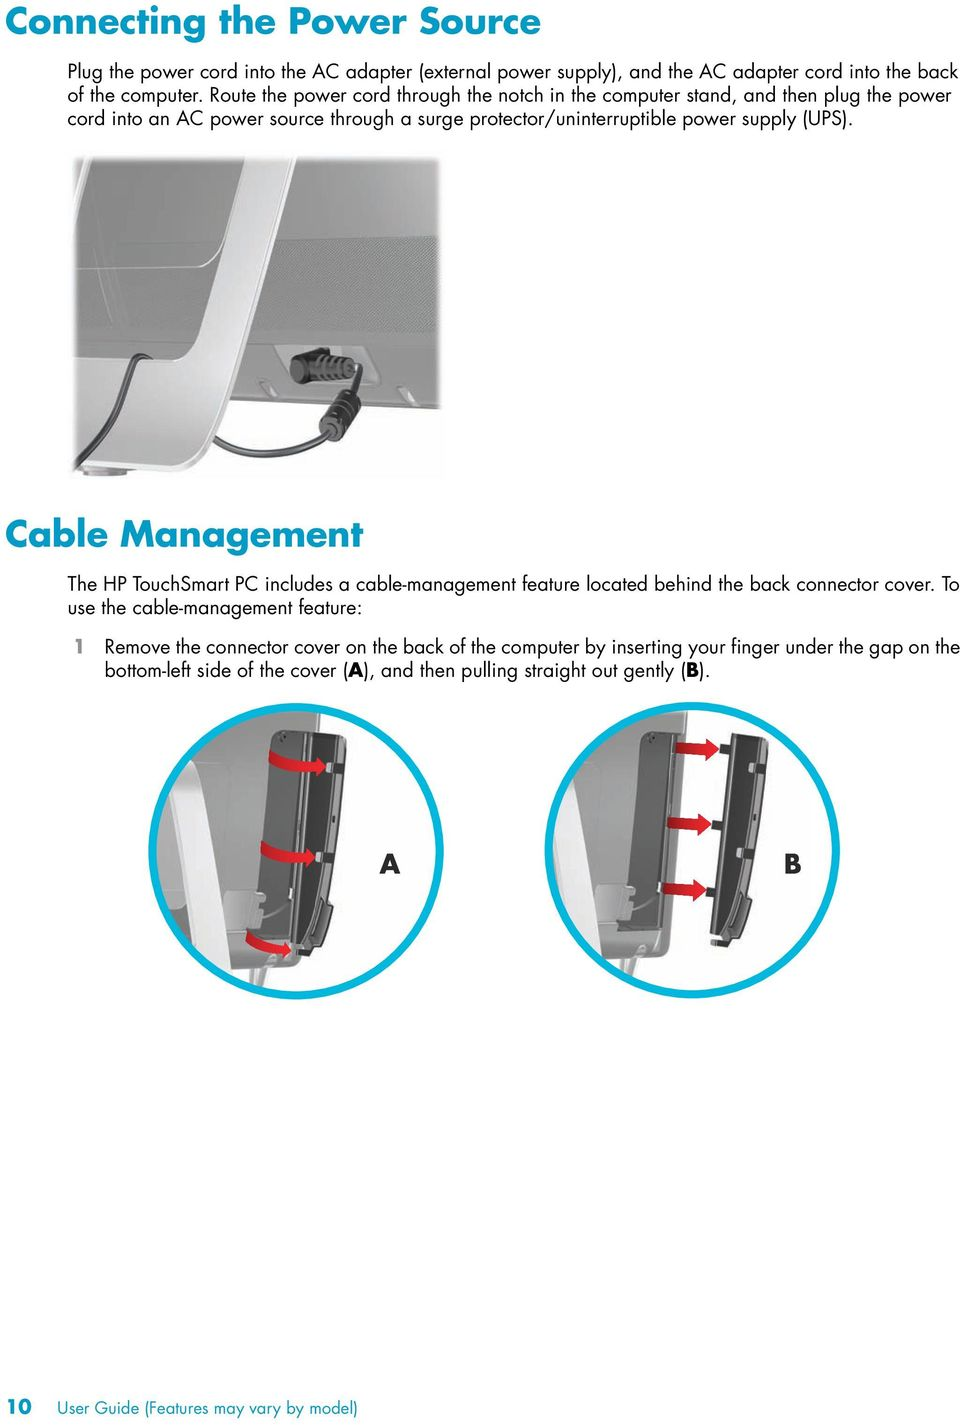 Cable Management The HP TouchSmart PC includes a cable-management feature located behind the back connector cover.